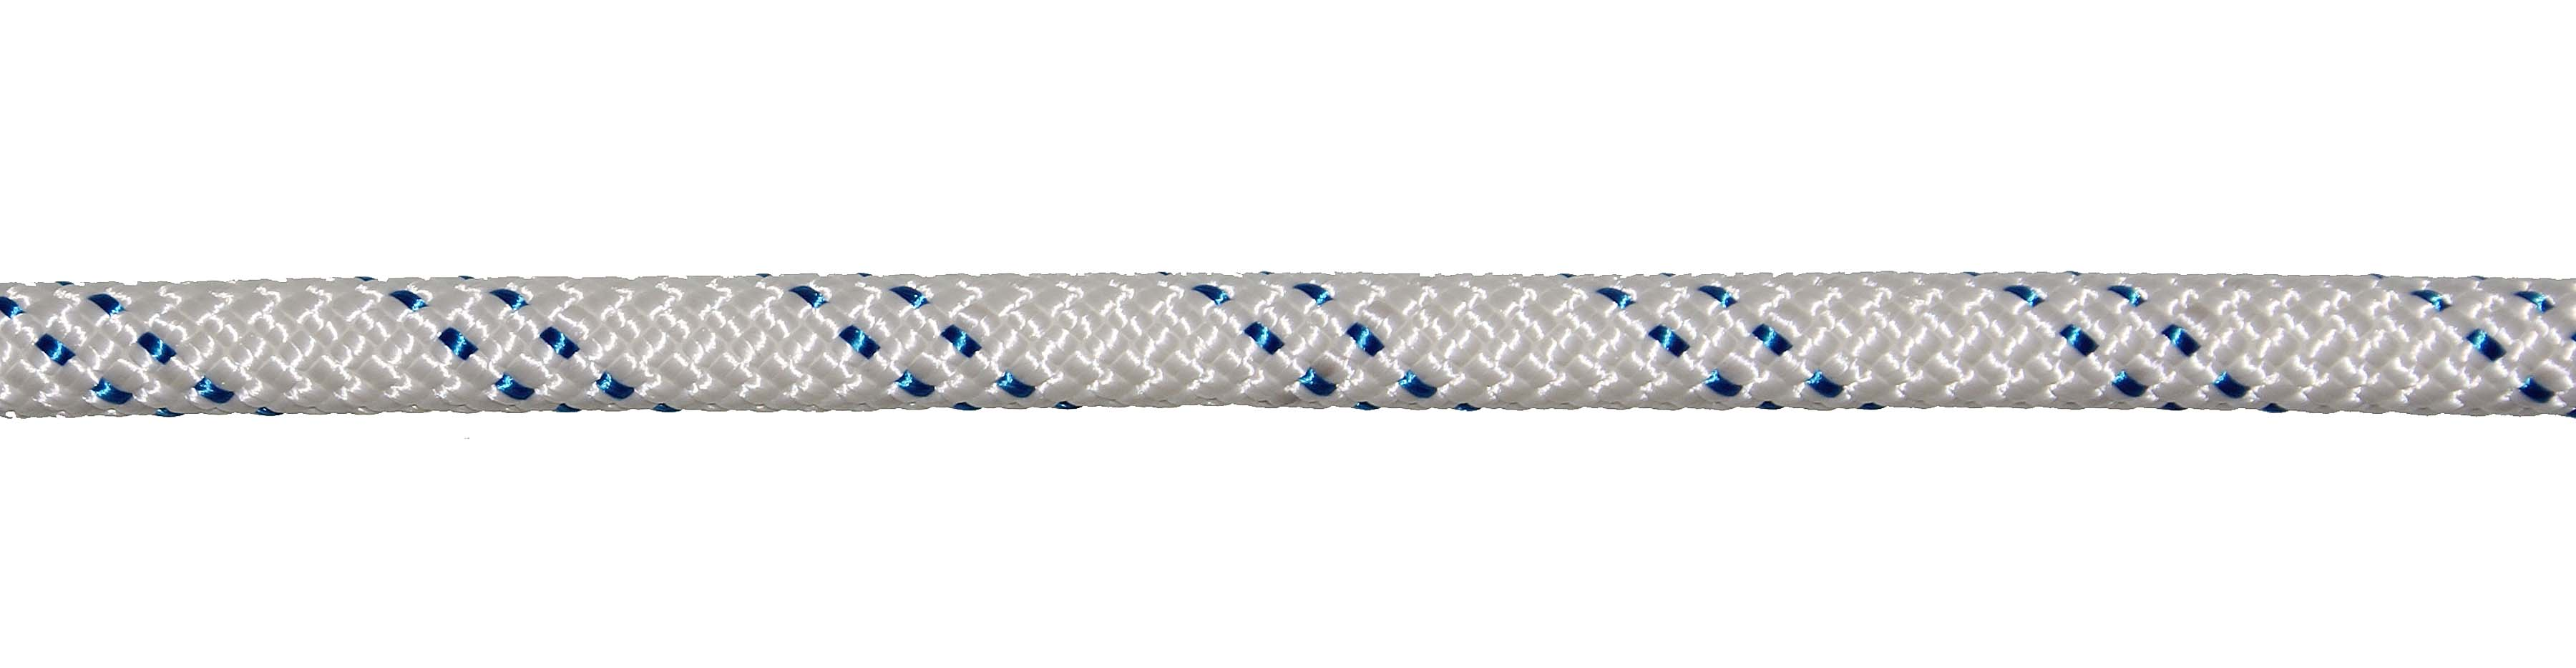 Recalled New England Rope KM-III 8 mm